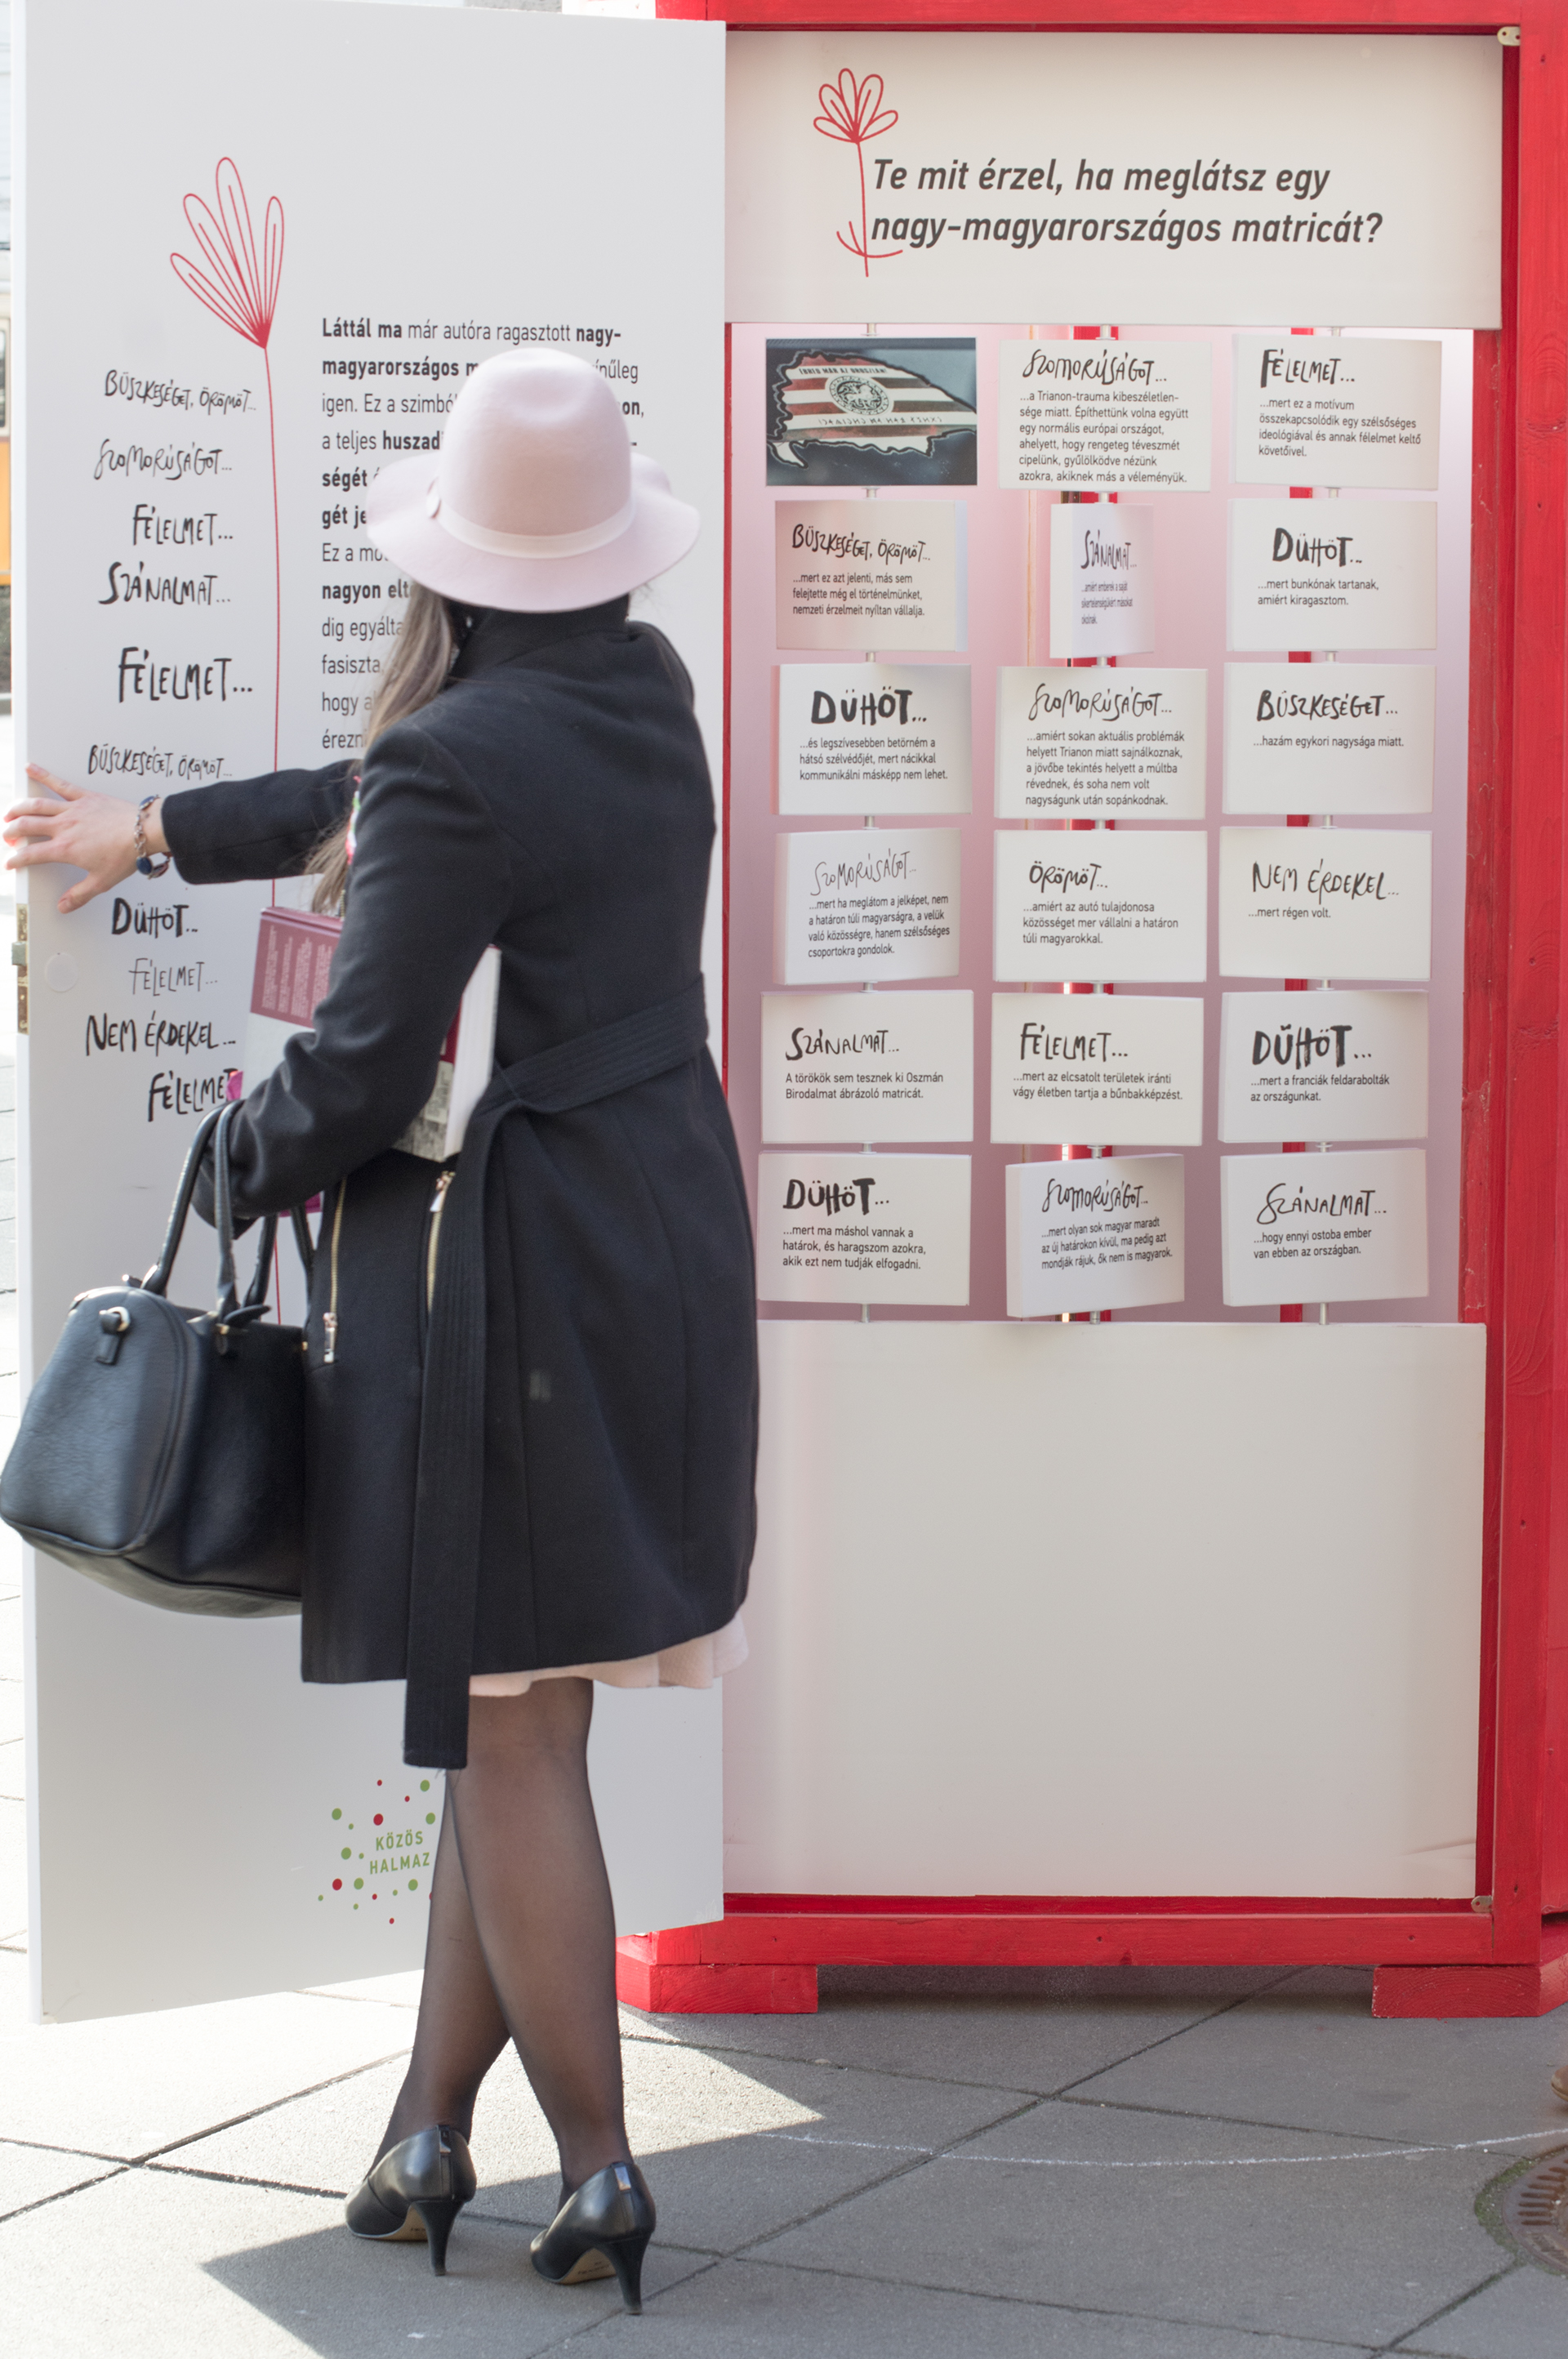 woman in pink hat standing in front of a door with handwriting and illustrations that's part of the exhibition